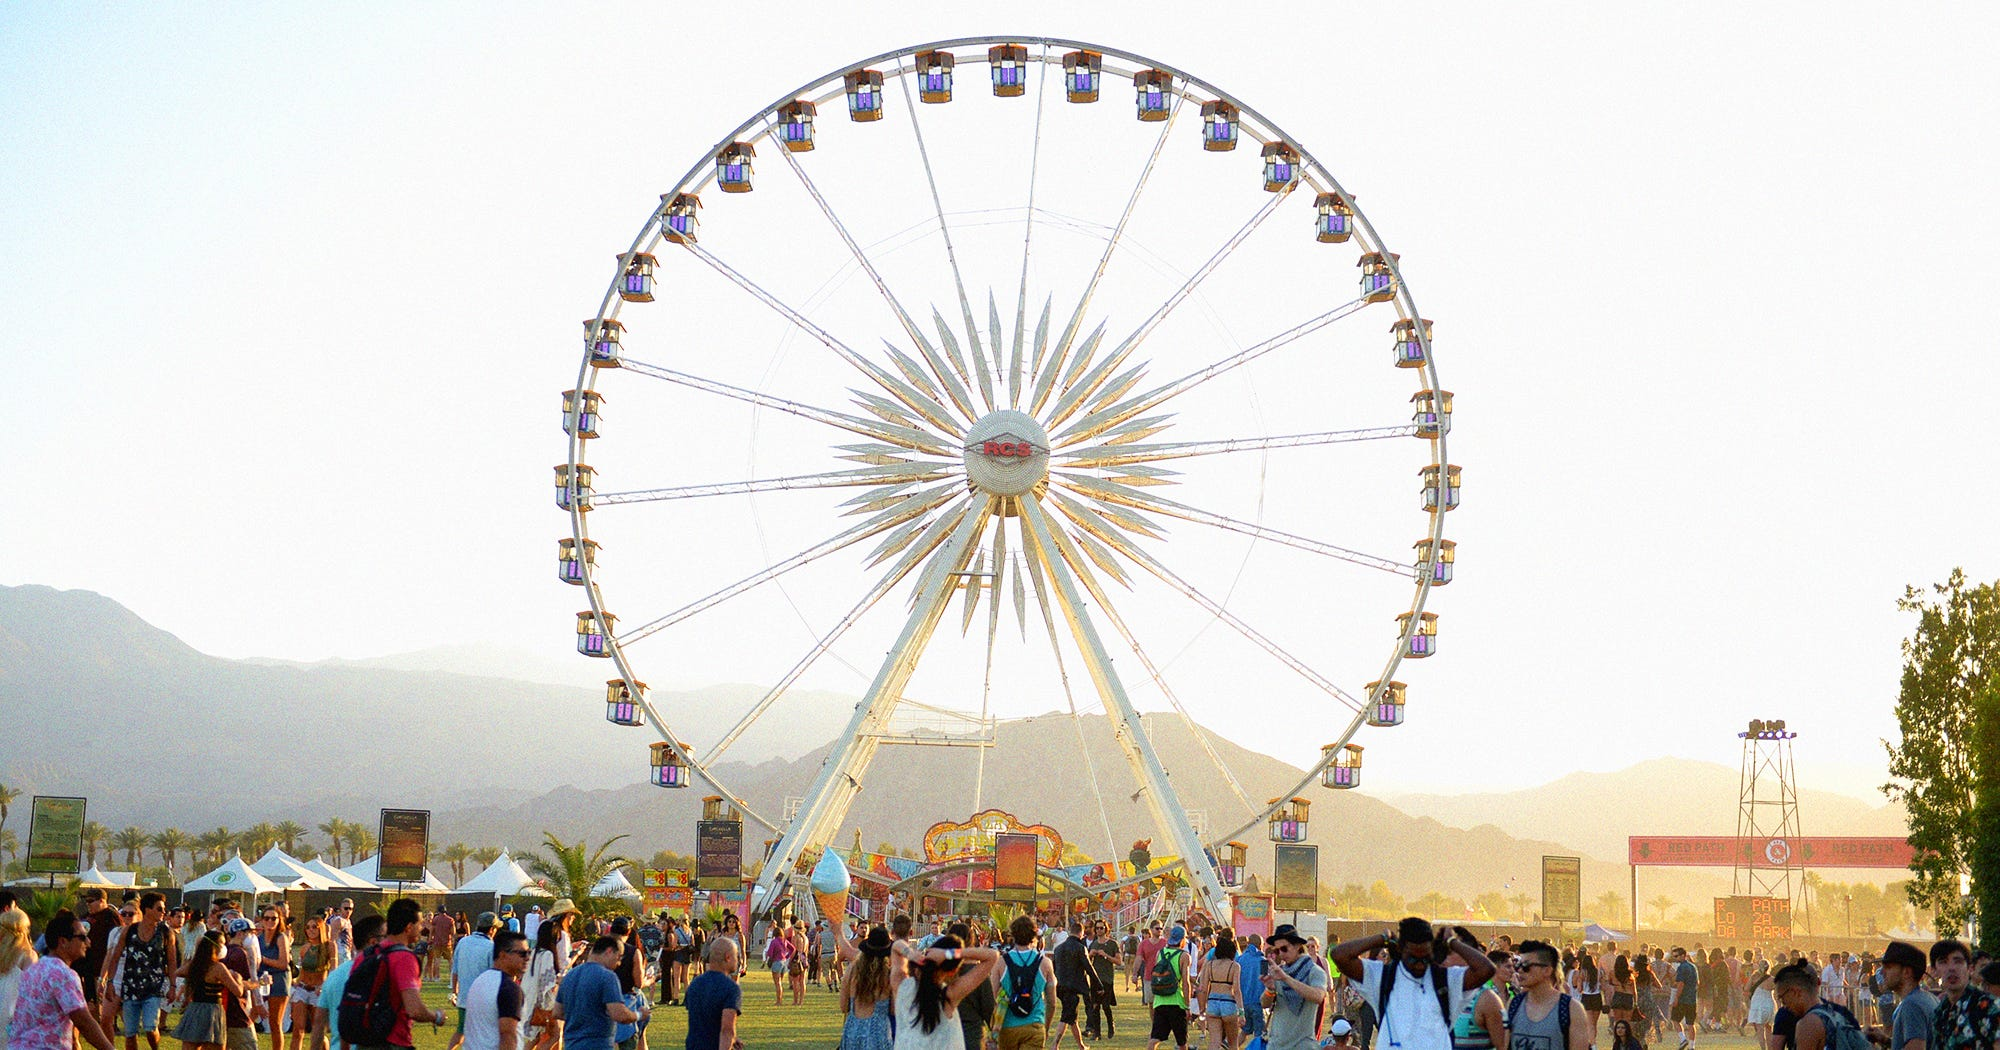 Women Who Played Coachella Tell All, From Weed Blackouts To Lindsay Lohan Sightings